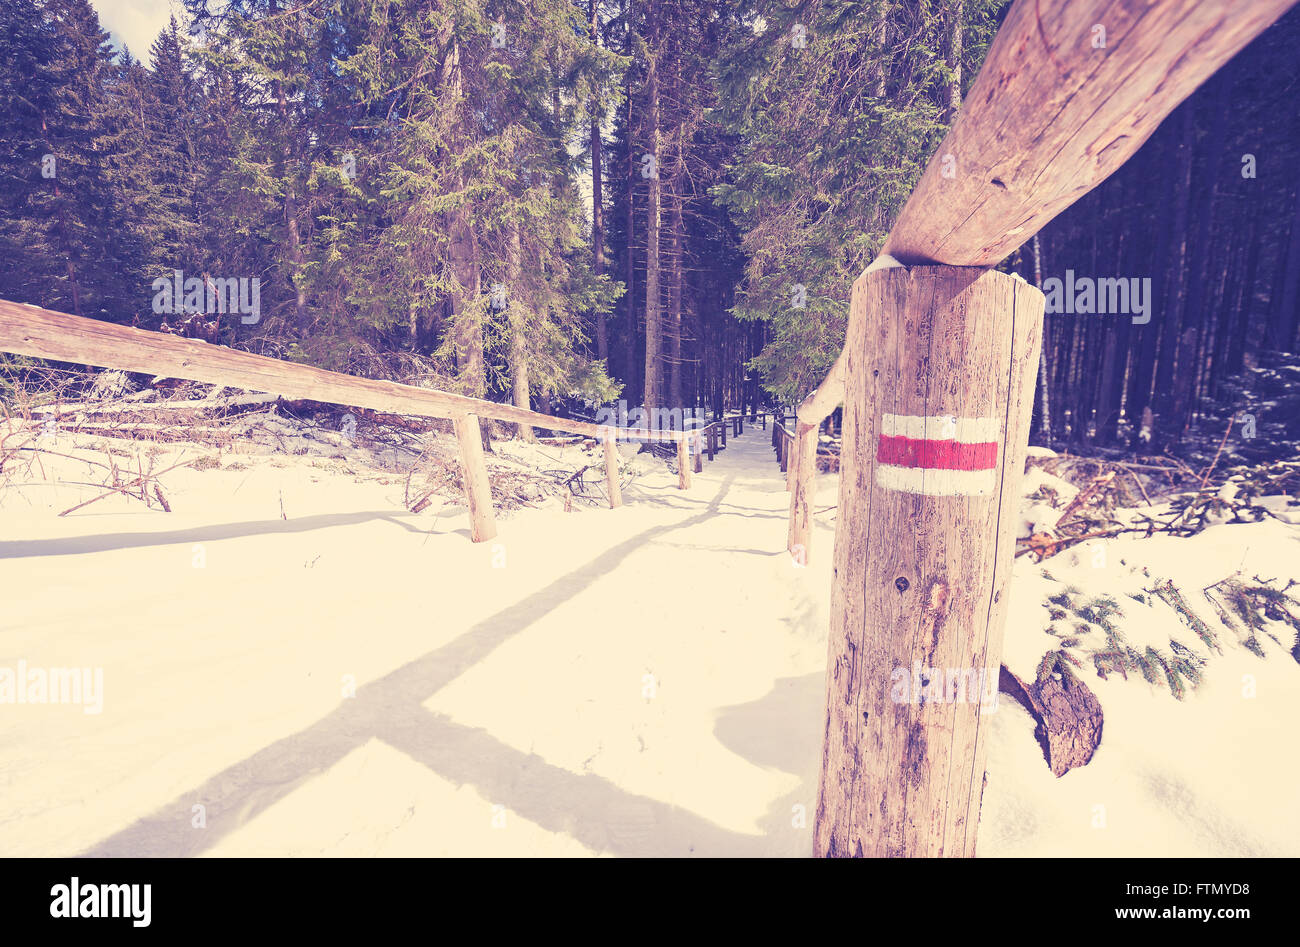 Vintage toned trail sign painted on perch, winter in Tatra mountains, Poland. - Stock Image